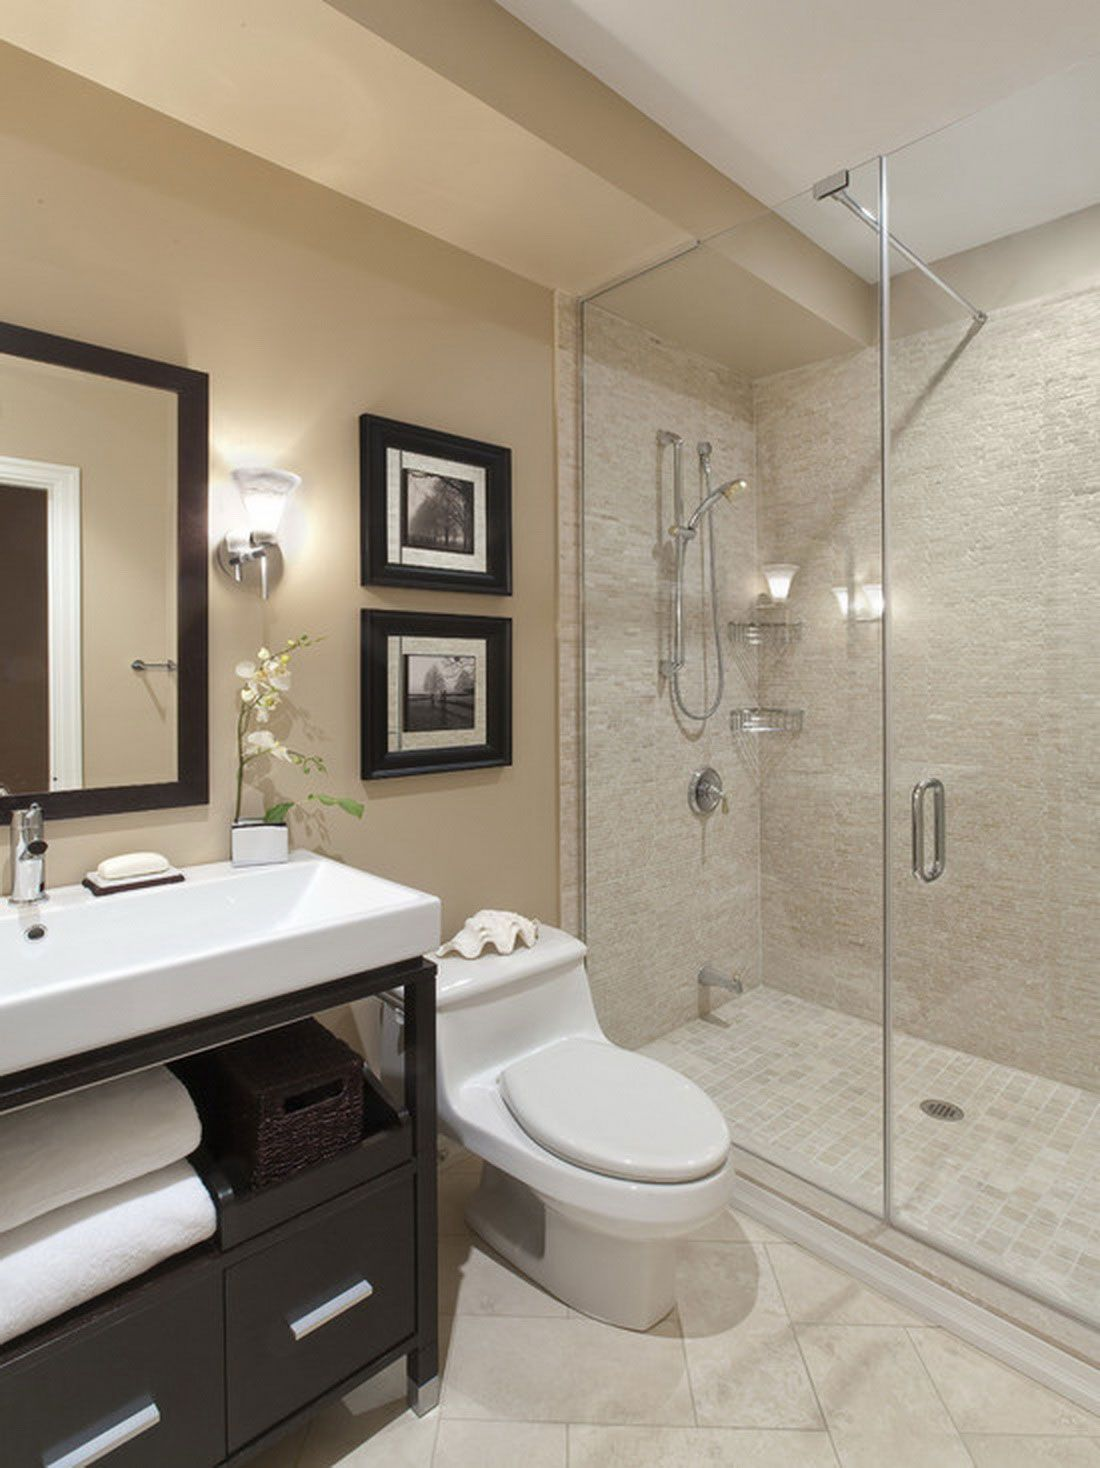 Bathroom designs 2013 - 15 Extraordinary Transitional Bathroom Designs For Any Home